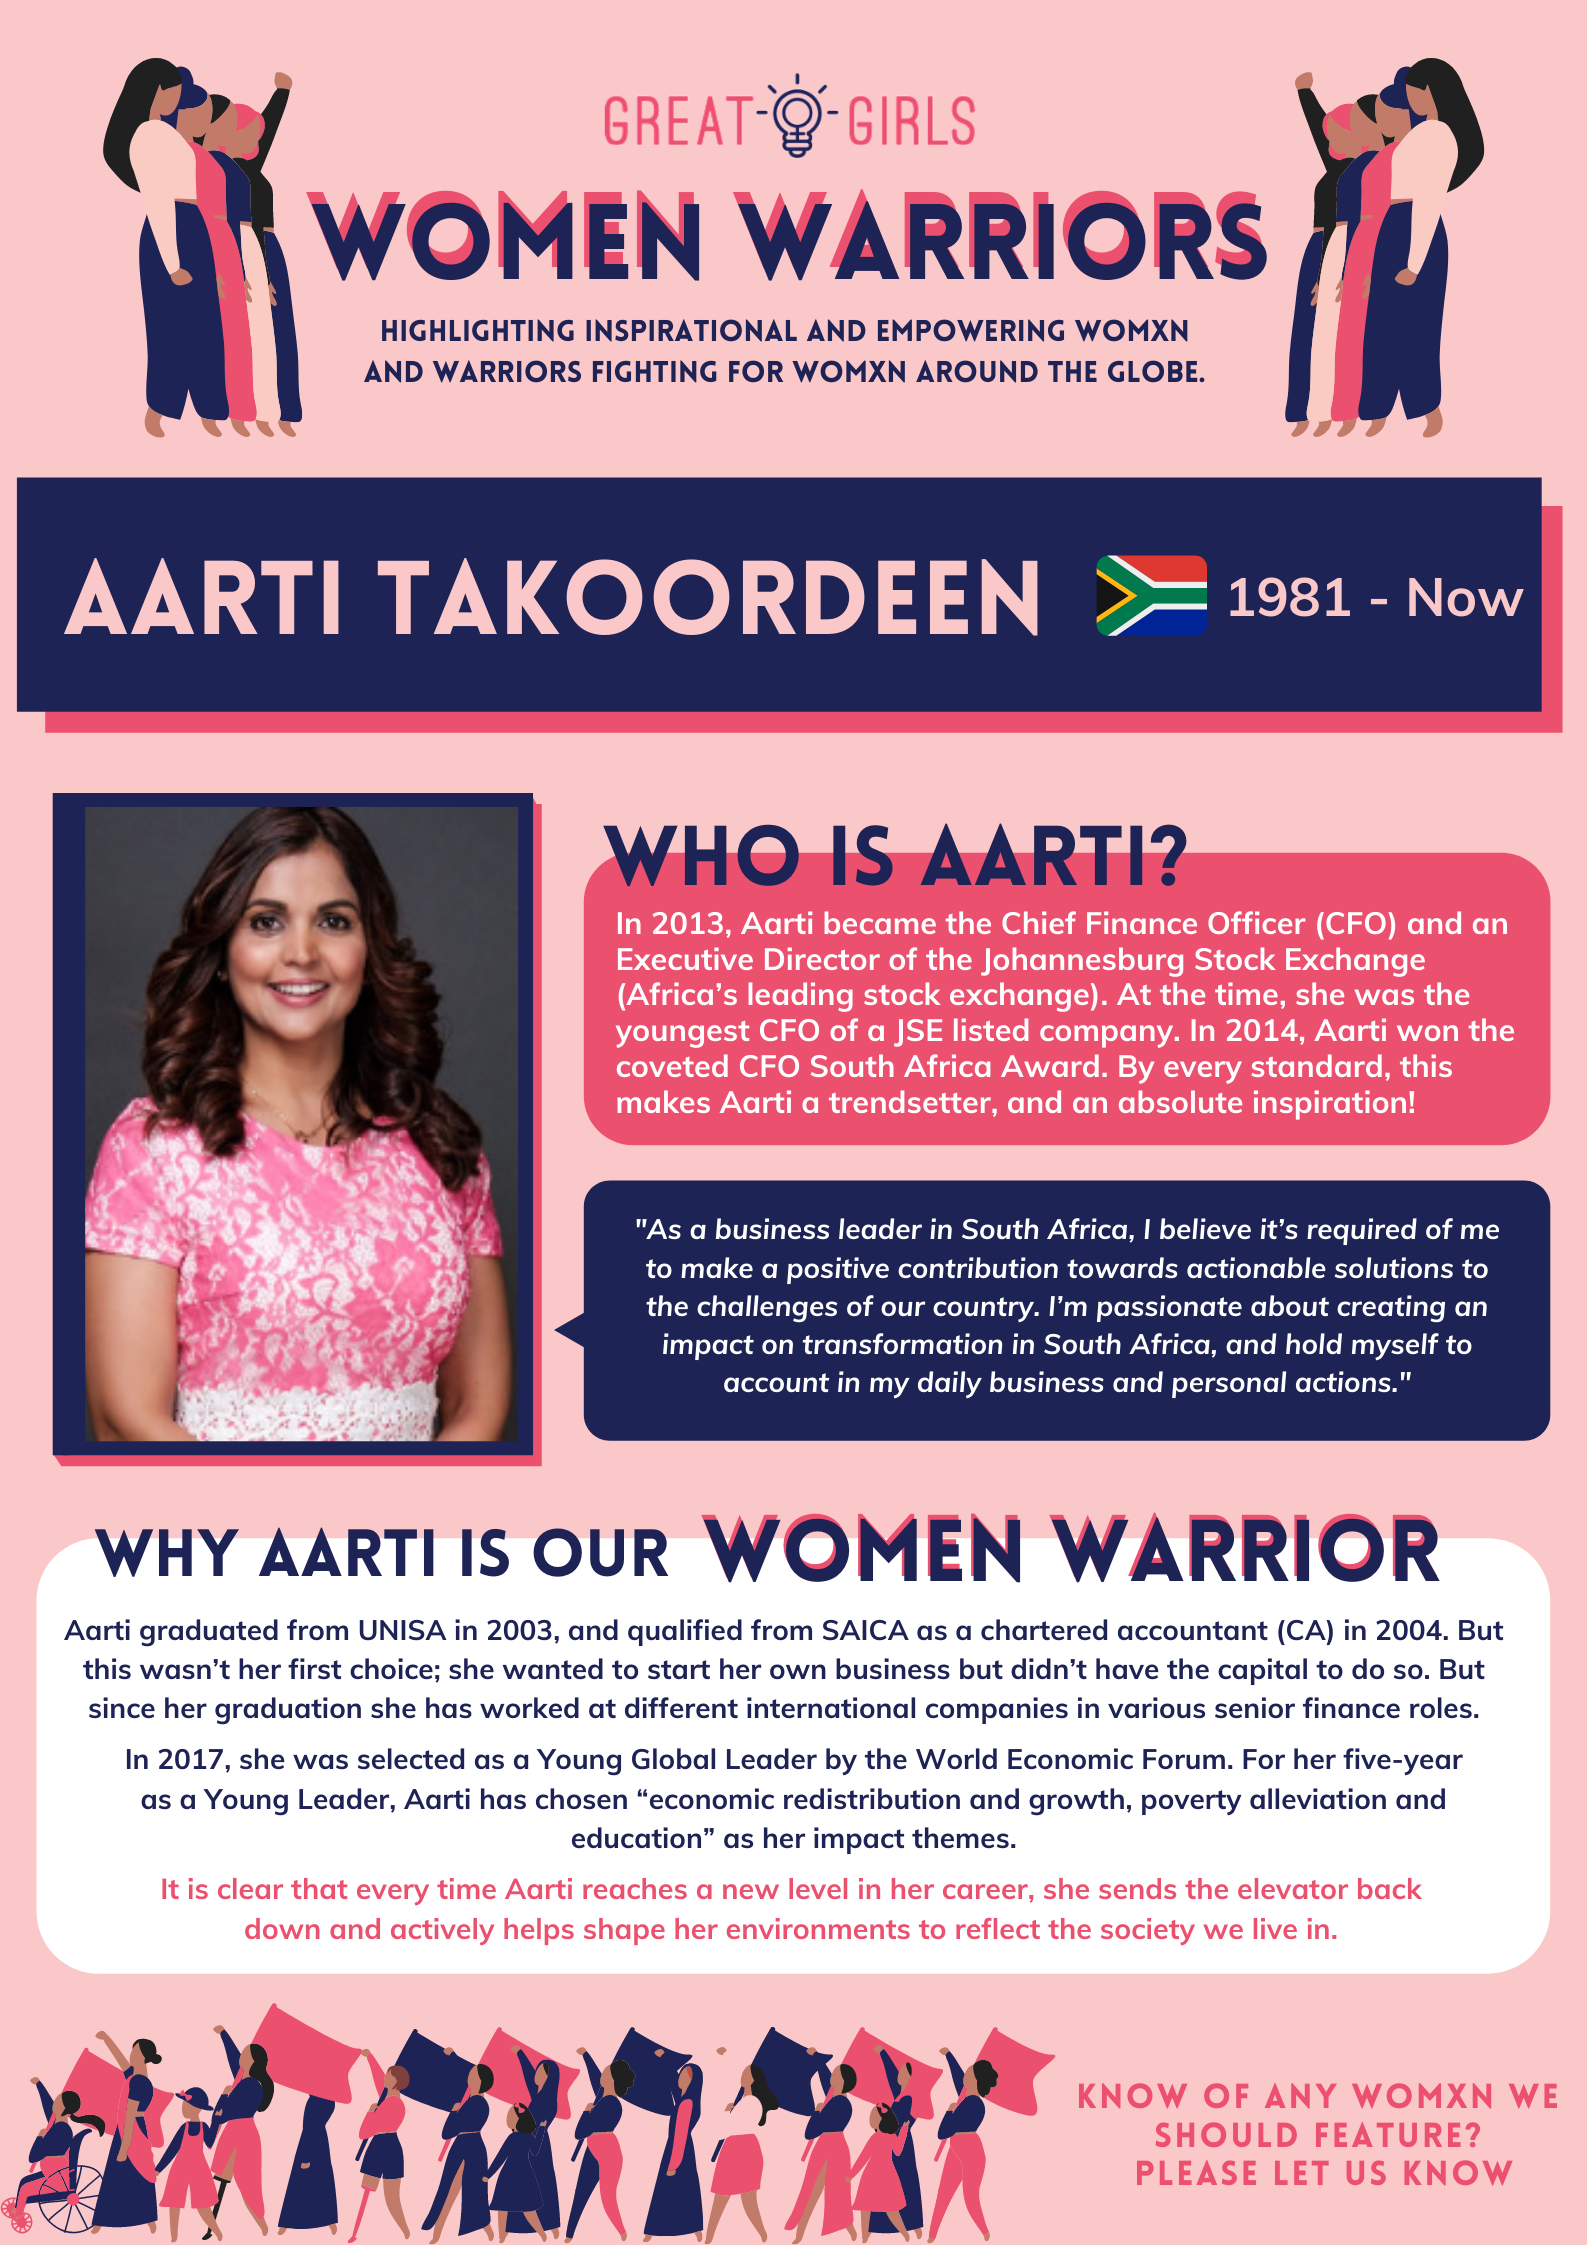 Women Warrior - Aarti Takoordeen